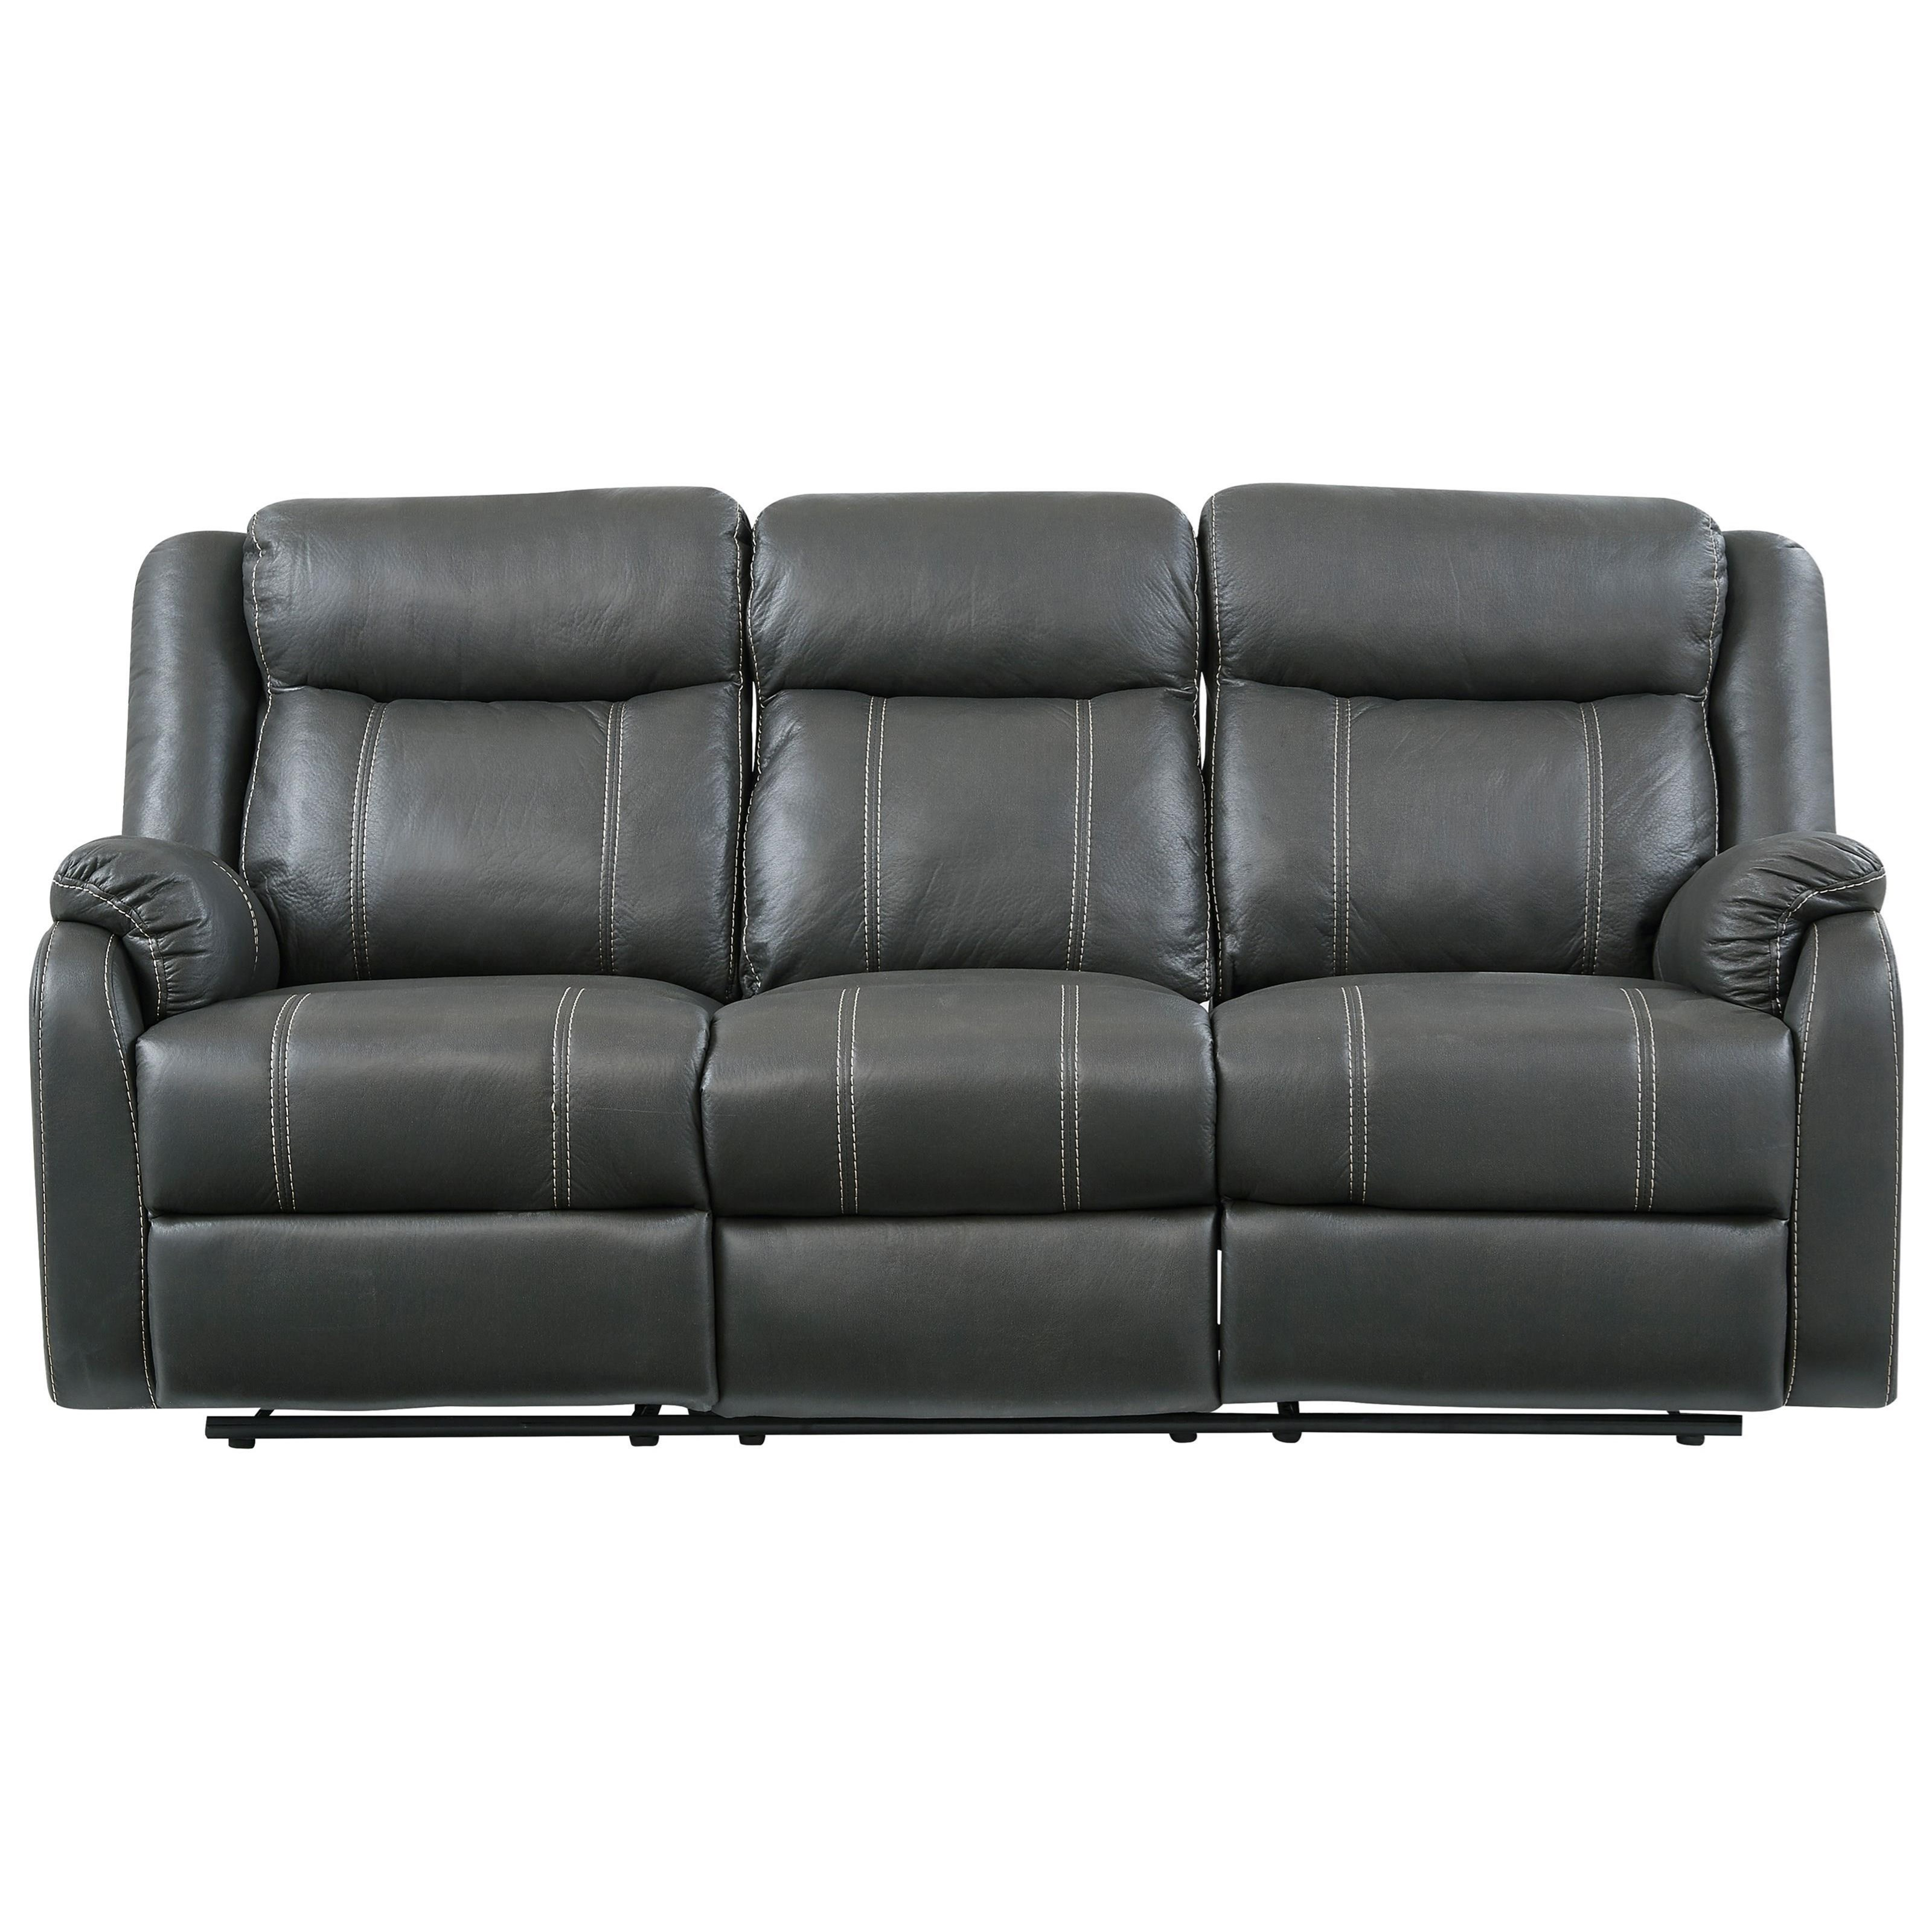 Recline Sofa with Dropdown